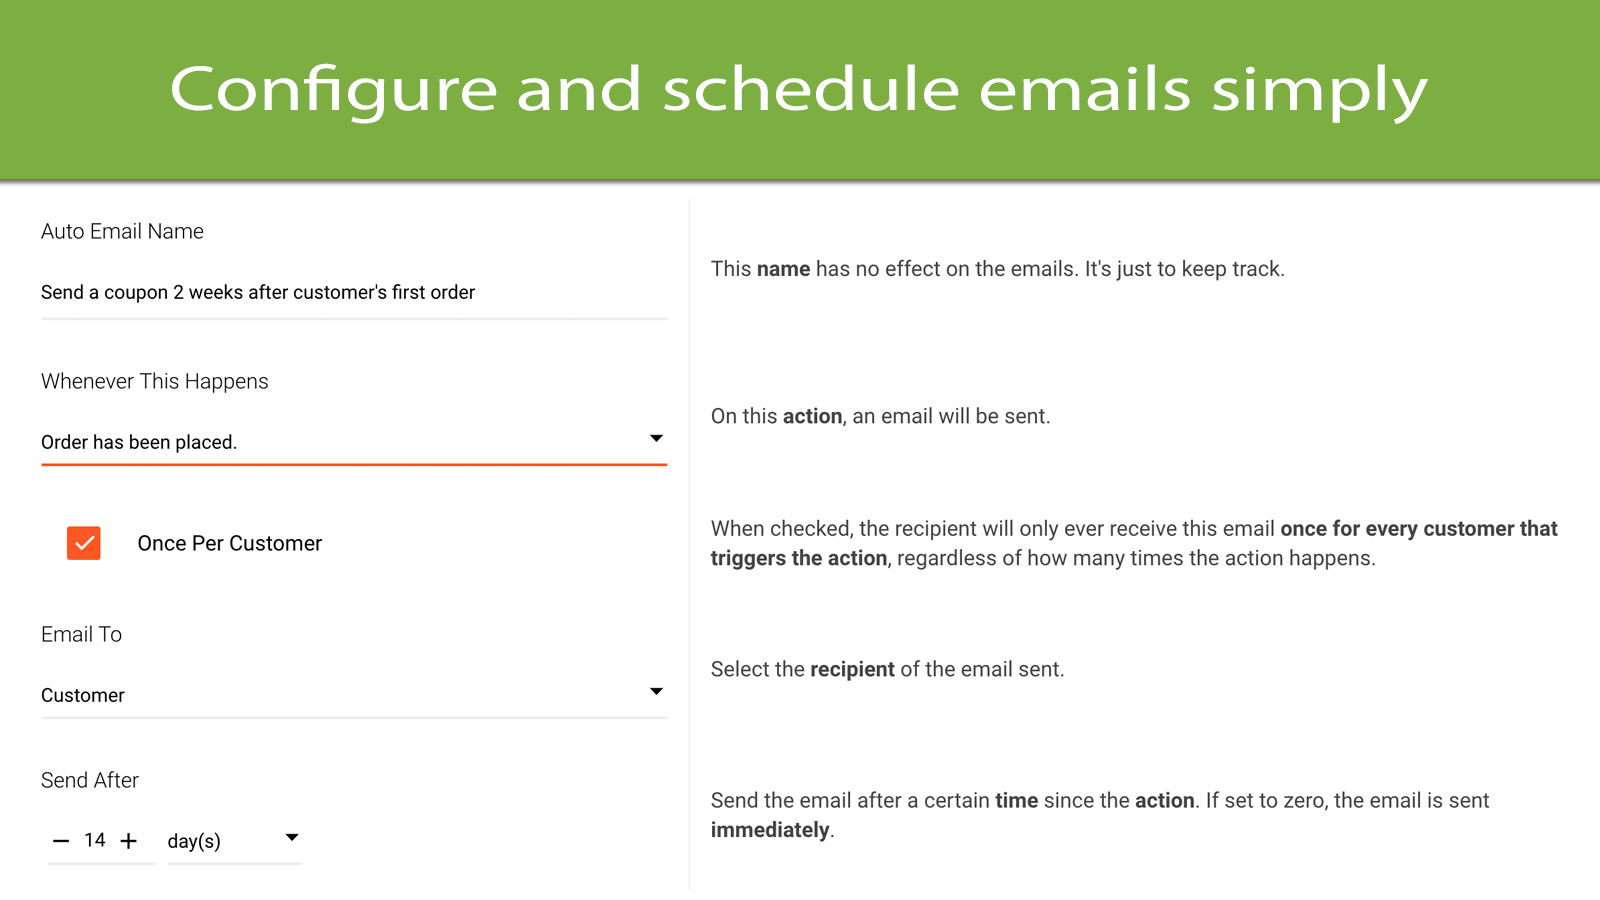 Configure and schedule emails simply